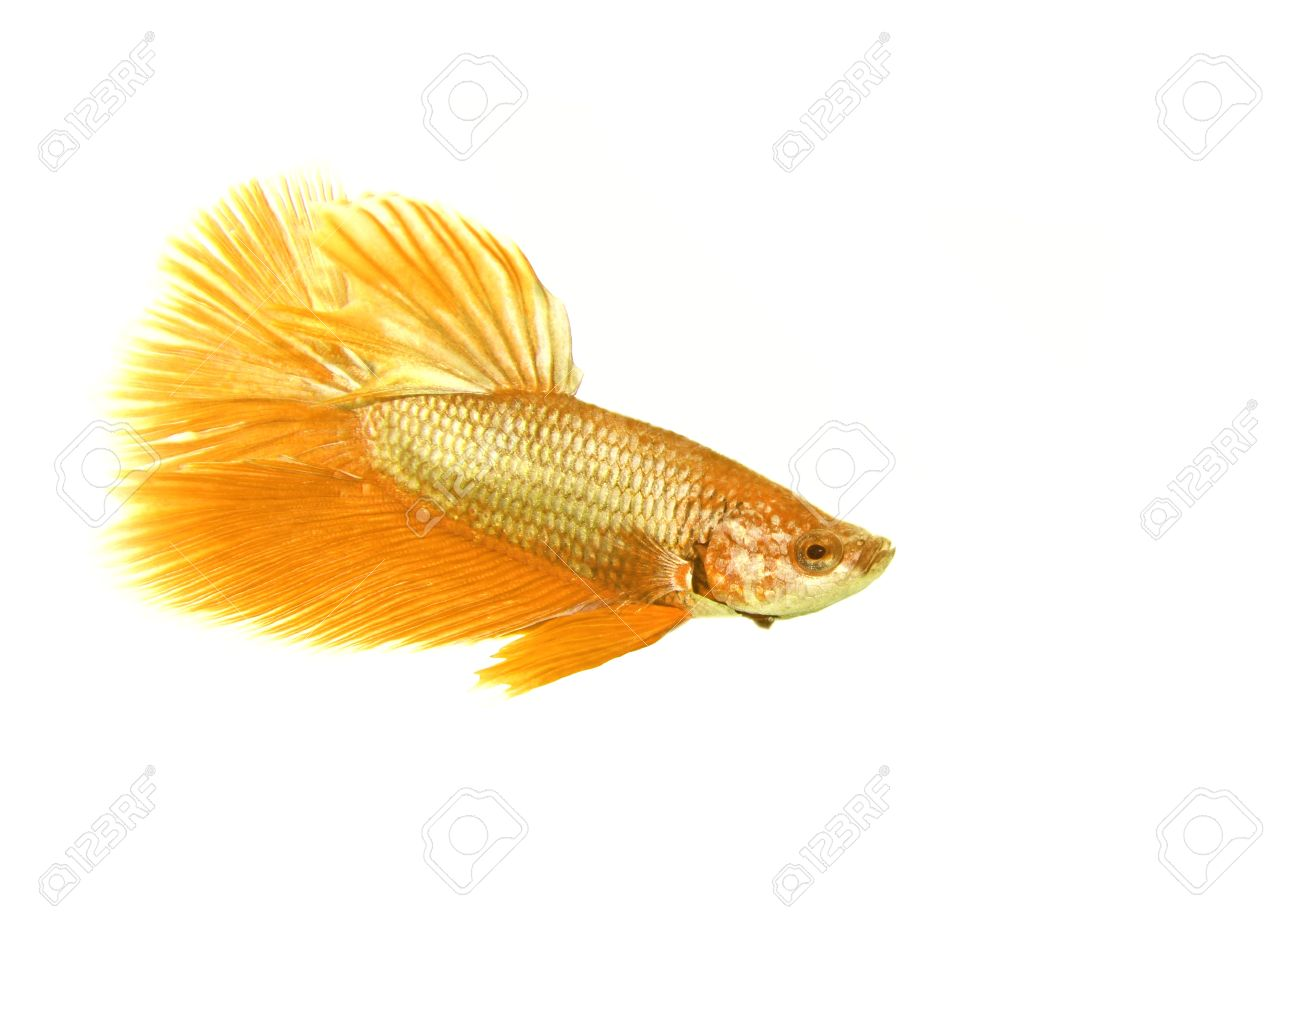 Gold betta fish on white background Stock Photo - 16165683